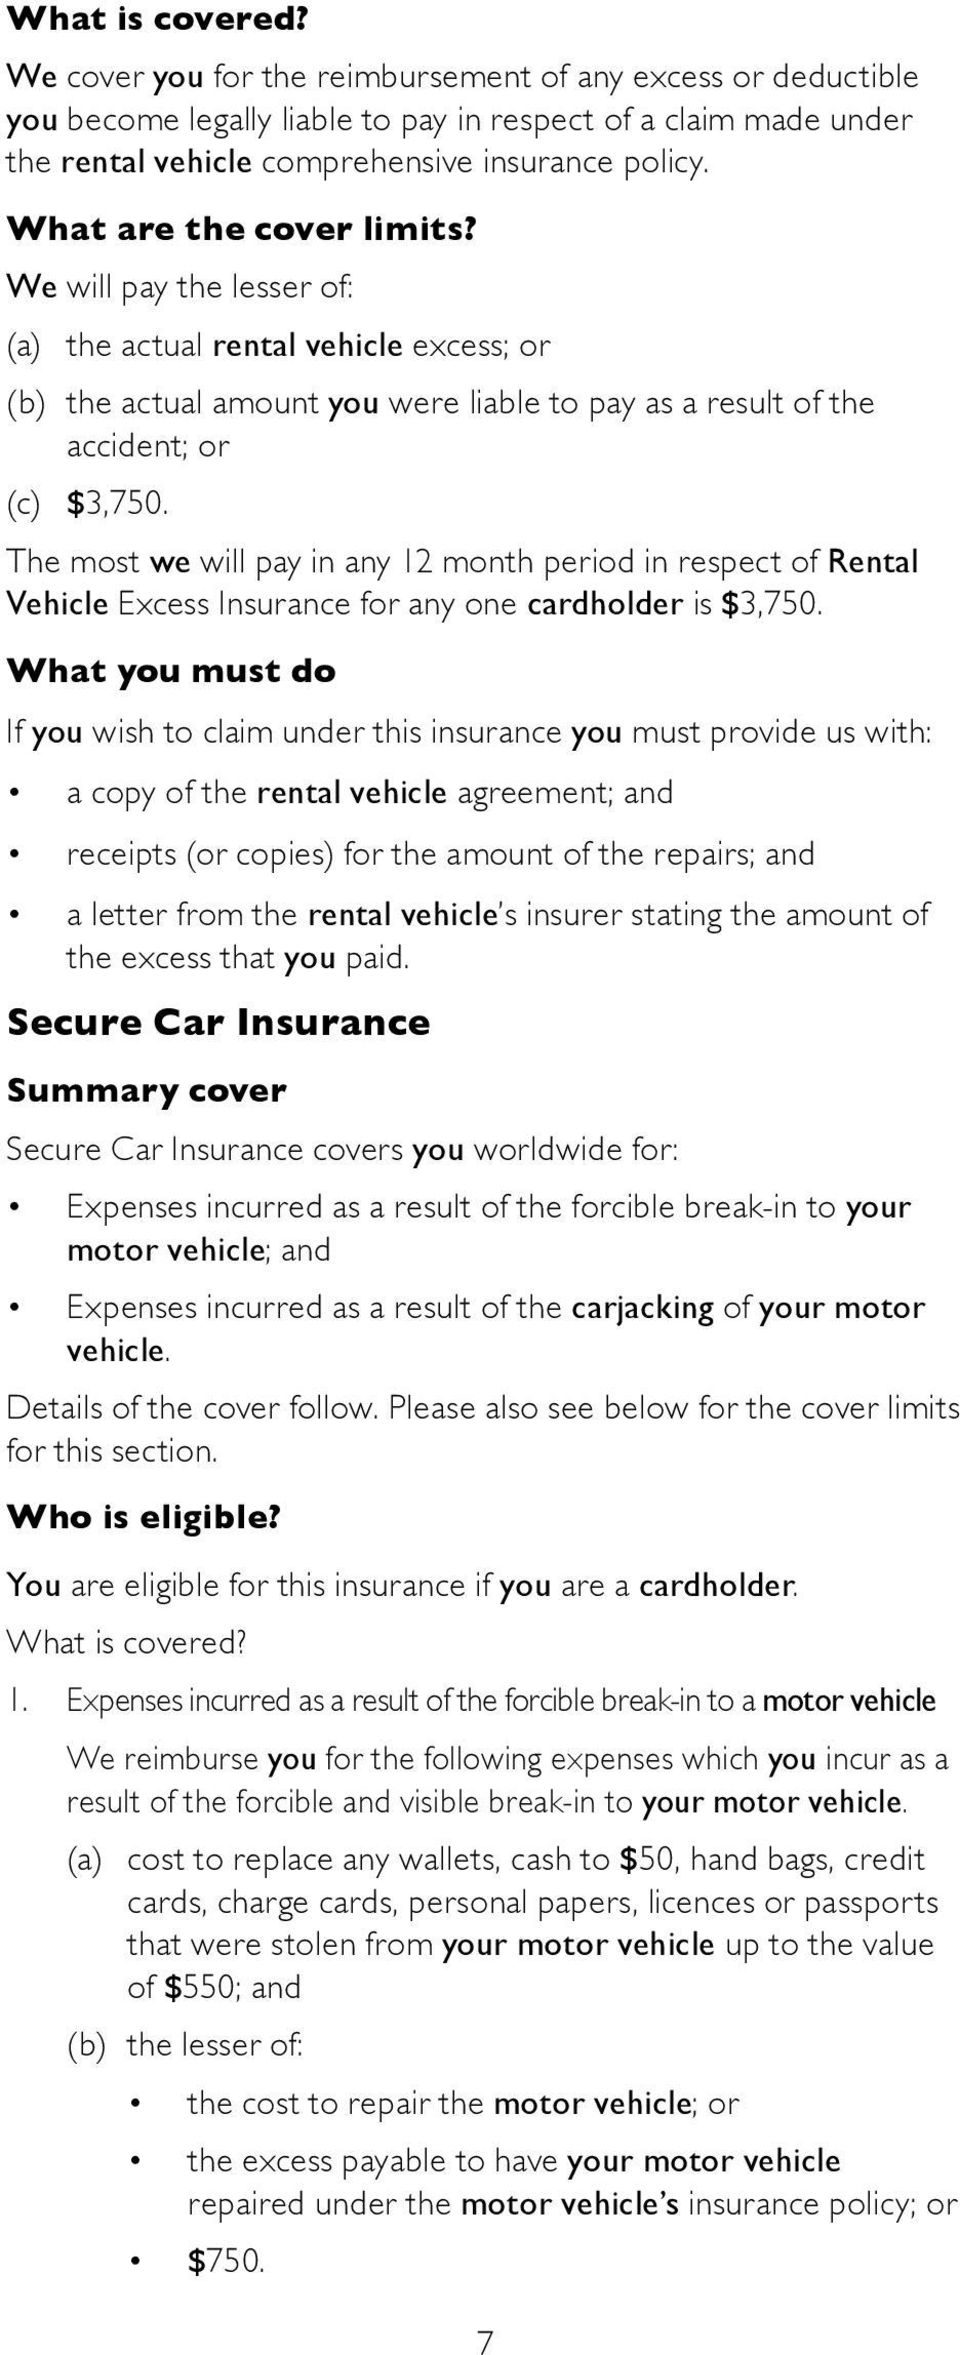 The most we will pay in any 12 month period in respect of Rental Vehicle Excess Insurance for any one cardholder is $3,750.